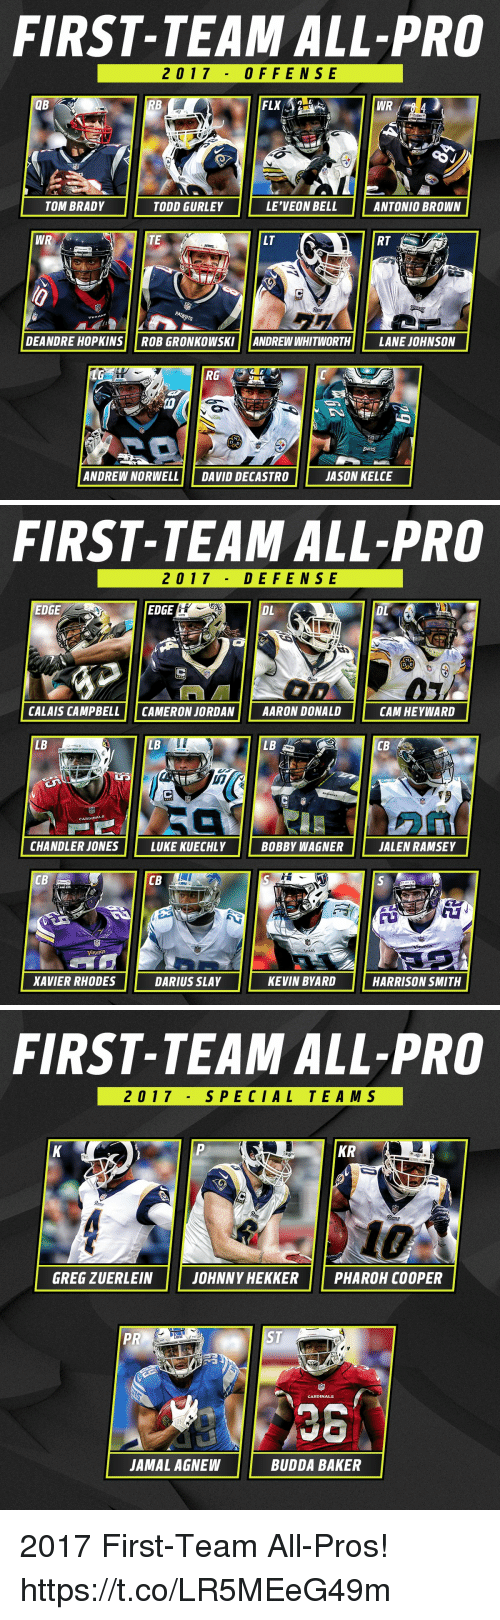 Memes, Tom Brady, and Rob Gronkowski: FIRST-TEAM ALL-PRO  2017 0F FENSE  QB  RB  FLX2  TOM BRADY  TODD GURLEY  LEVEON BELL  ANTONIO BROWN  WR  TE  LT  RT  Pa  DEANDRE HOPKINS ROB GRONKOWSKI ANDREW WHITWORTH LANE JOHNSON  RG  ANDREW NORWELL DAVID DECASTRO  JASON KELCE   FIRST-TEAM ALL-PRO  2017 DE FENSE  EDGE  EDGE  DL  DL  CALAIS CAMPBELL CAMERON JORDAN AARON DONALD  CAM HEYWARD  LB  LB  CB  CARDINALS  CHANDLER JONES  LUKE KUECHLY  BOBBY WAGNER  JALEN RAMSEY  CB  XAVIER RHODES  DARIUS SLAY  KEVIN BYARD  HARRISON SMITH   FIRST-TEAM ALL-PRO  2017S PE CIAL TEA M S  KR  Rams  GREG ZUERLEINJOHNNY HEKKER PHAROH COOPER  PR  ST  CARDINALS  36  JAMAL AGNEW  BUDDA BAKER 2017 First-Team All-Pros! https://t.co/LR5MEeG49m